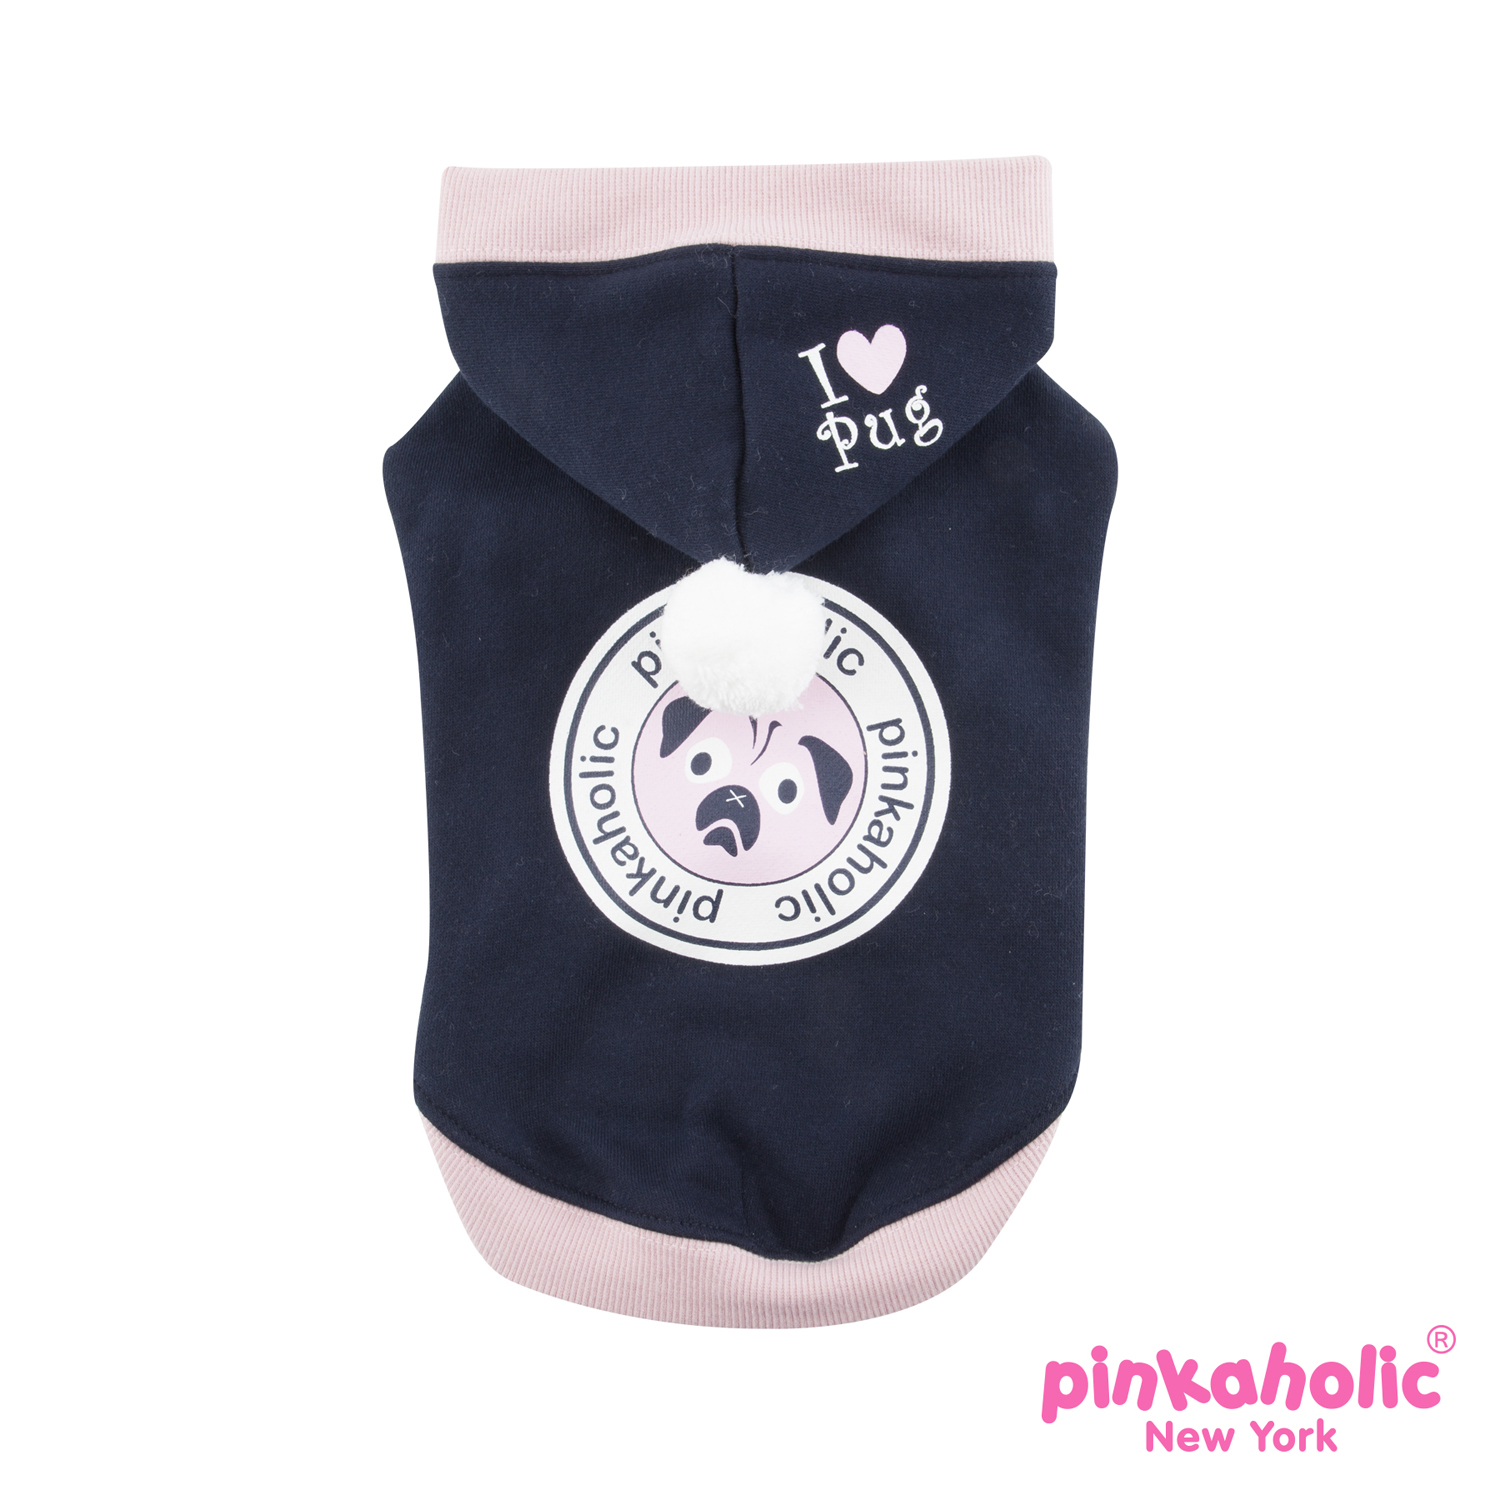 Chiquito Dog Hoodie by Pinkaholic - Navy